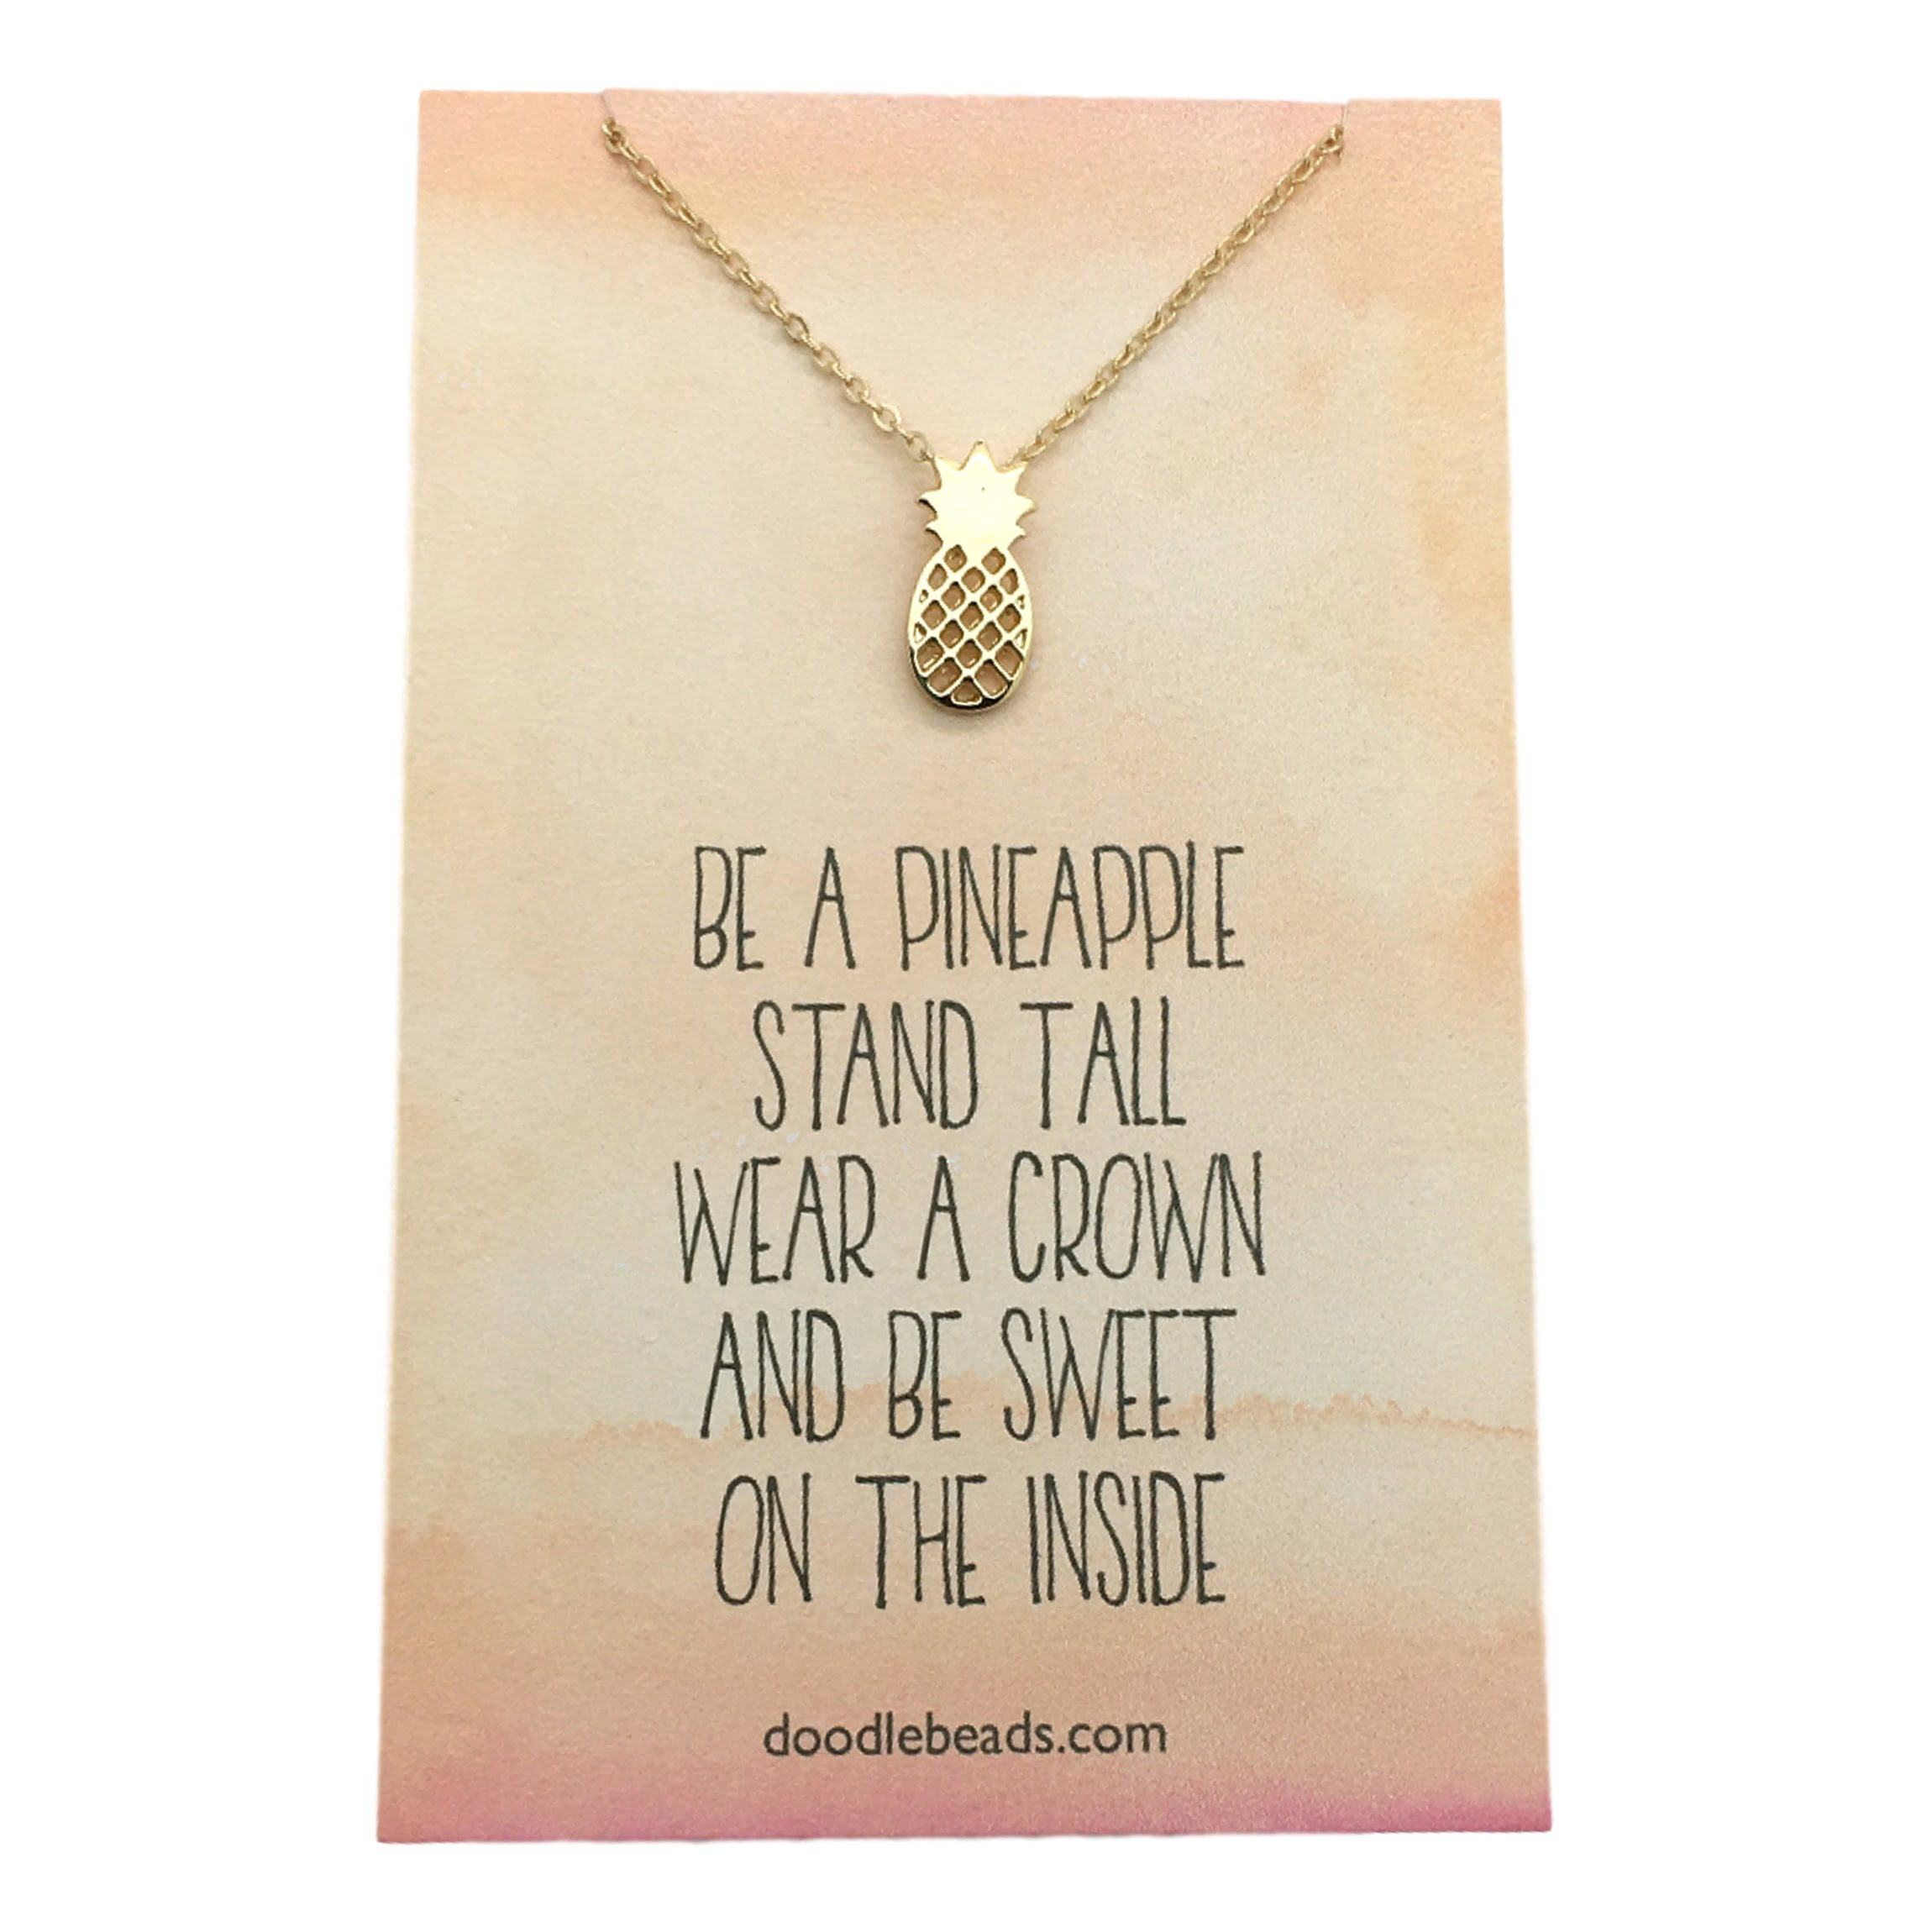 pineapple jlani image products necklace